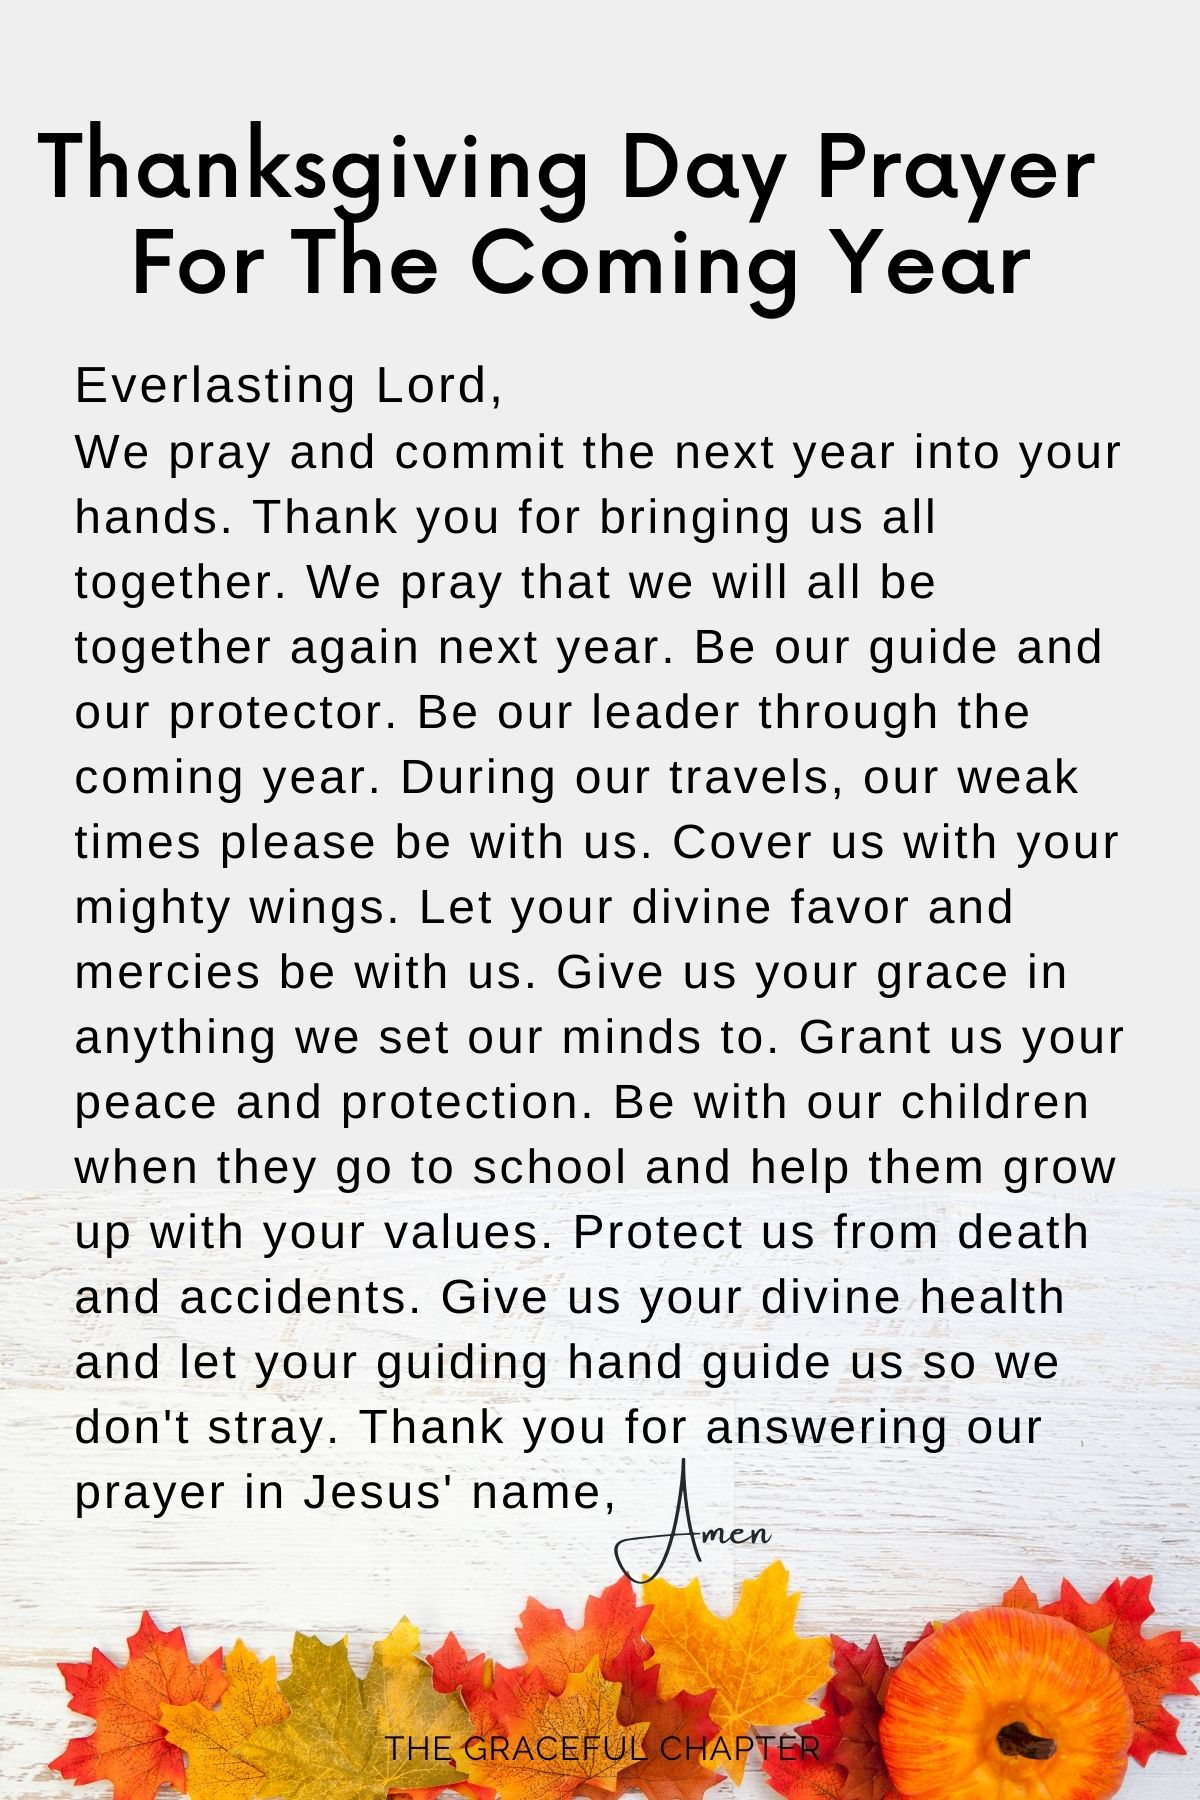 prayers for thanksgiving day - for the coming year